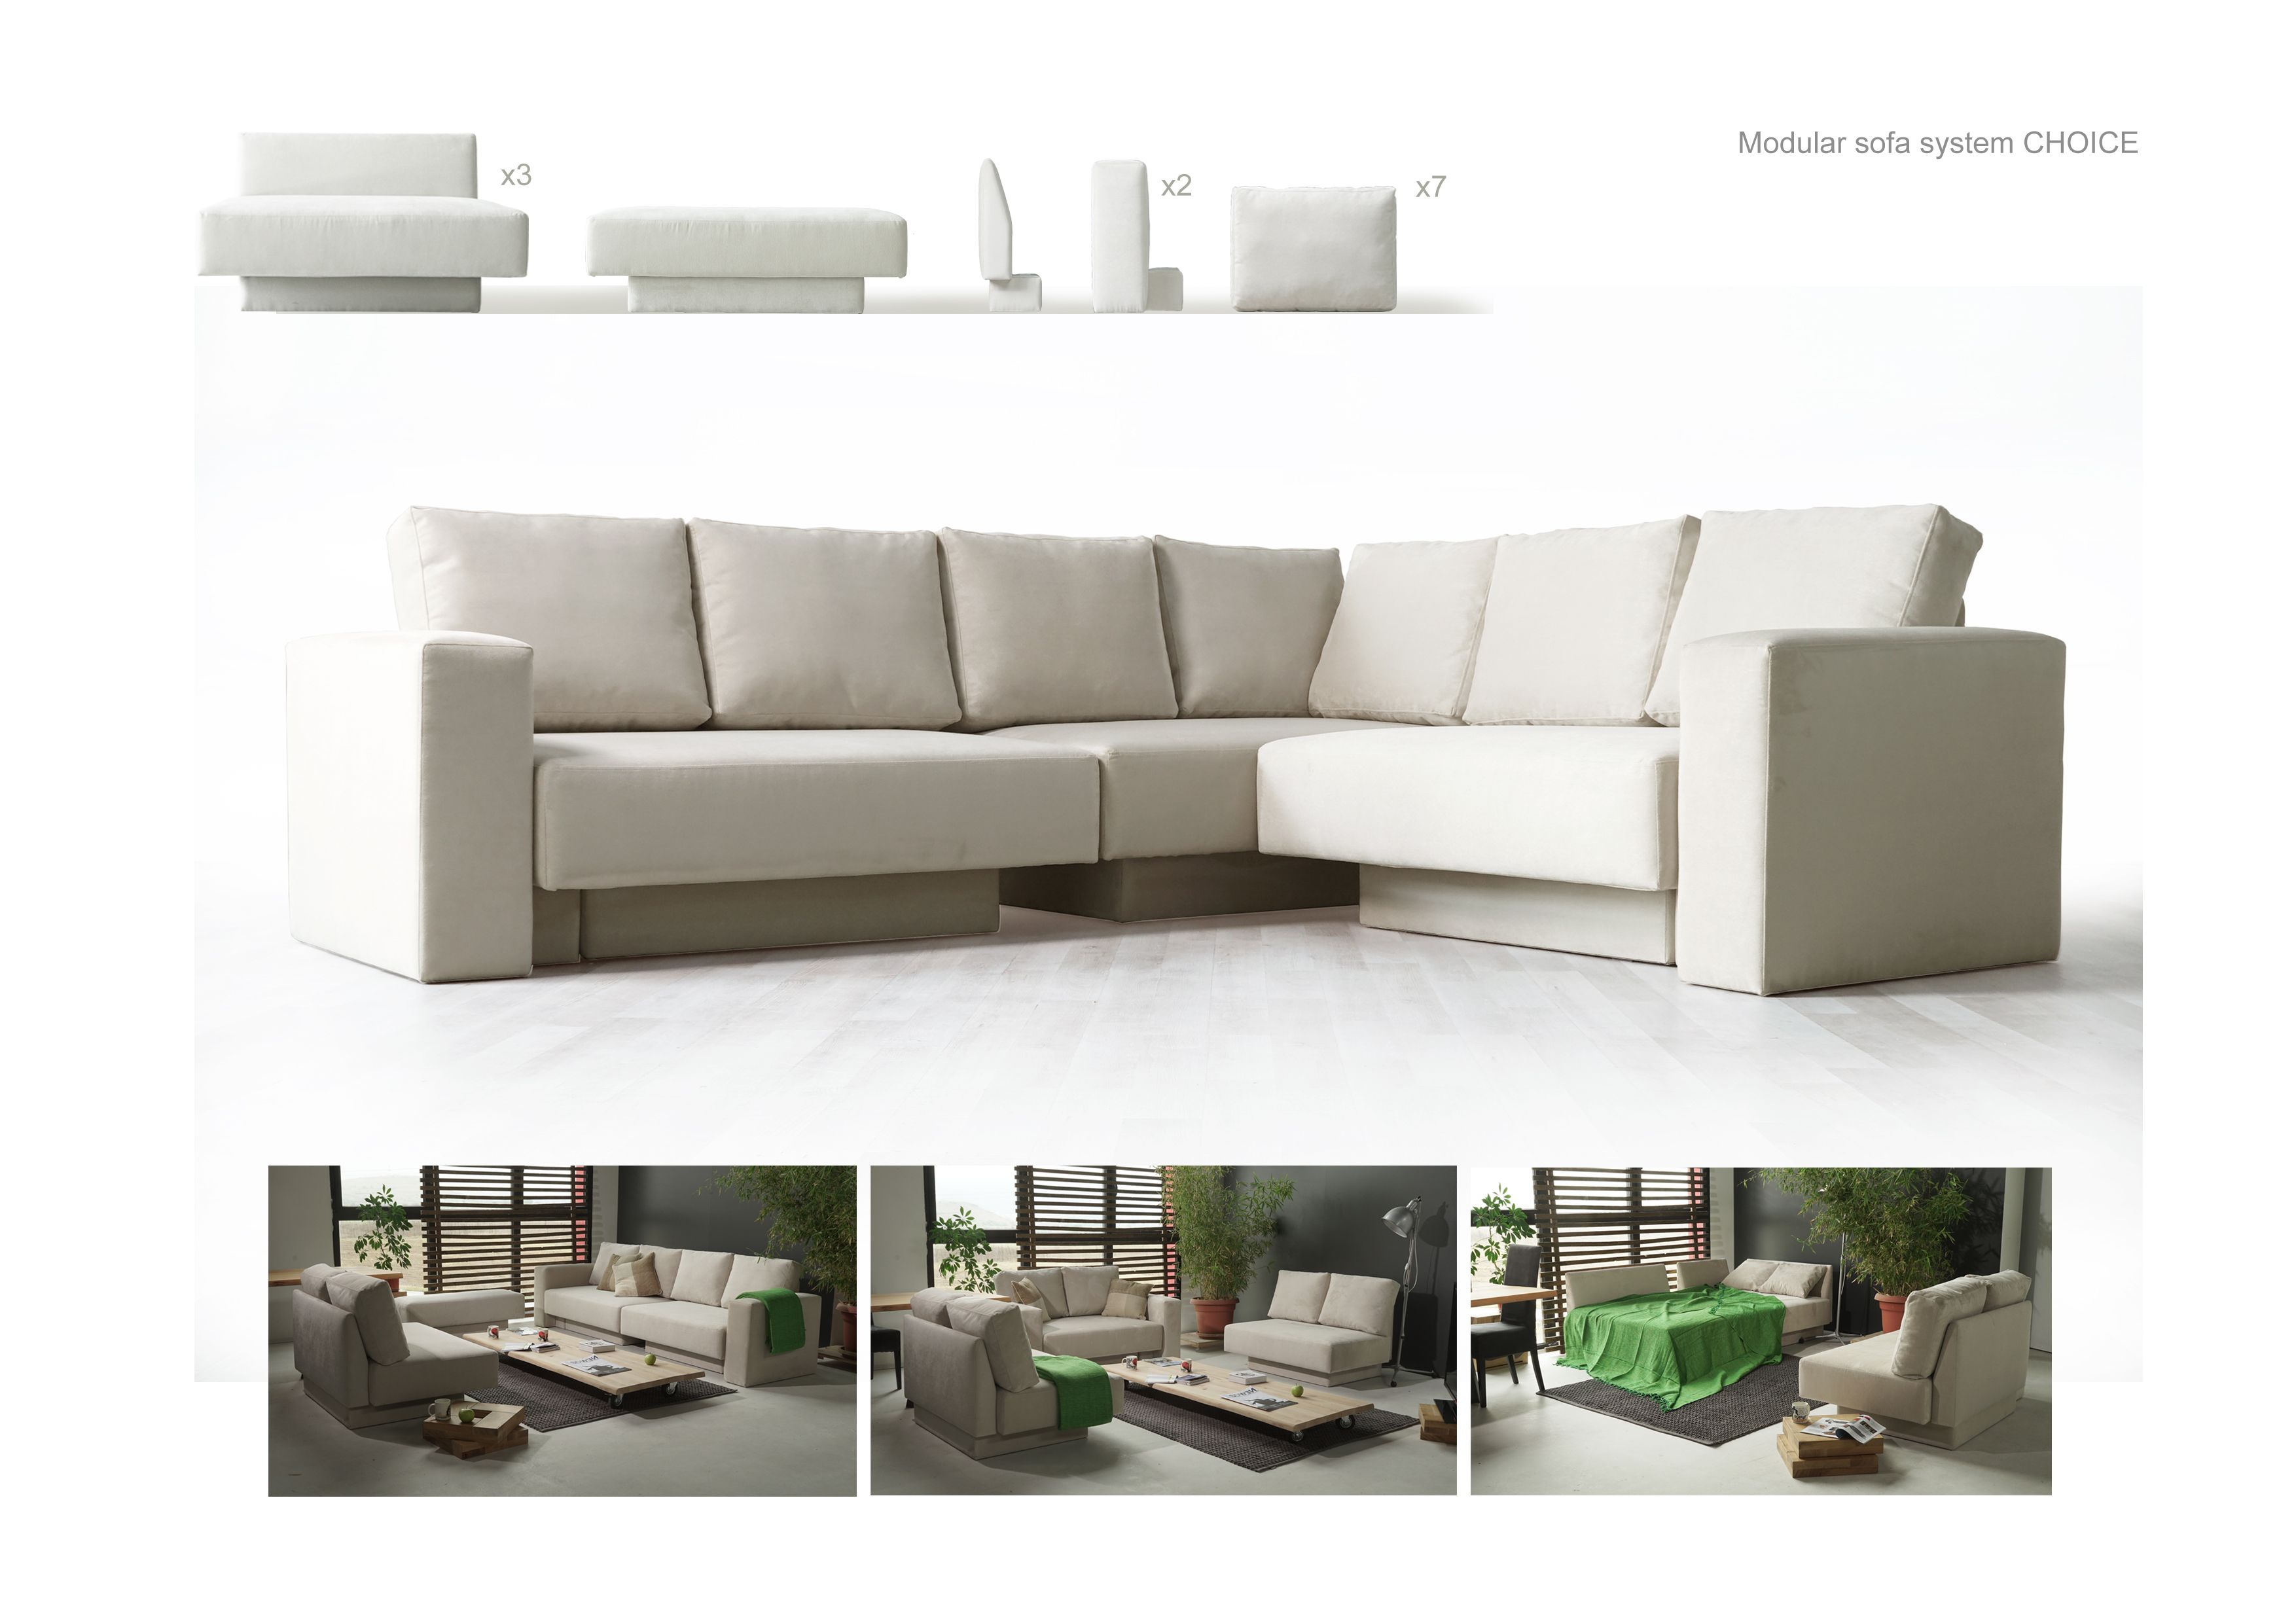 Pin By Feydom Sofia On Choice Furniture Sectional Couch